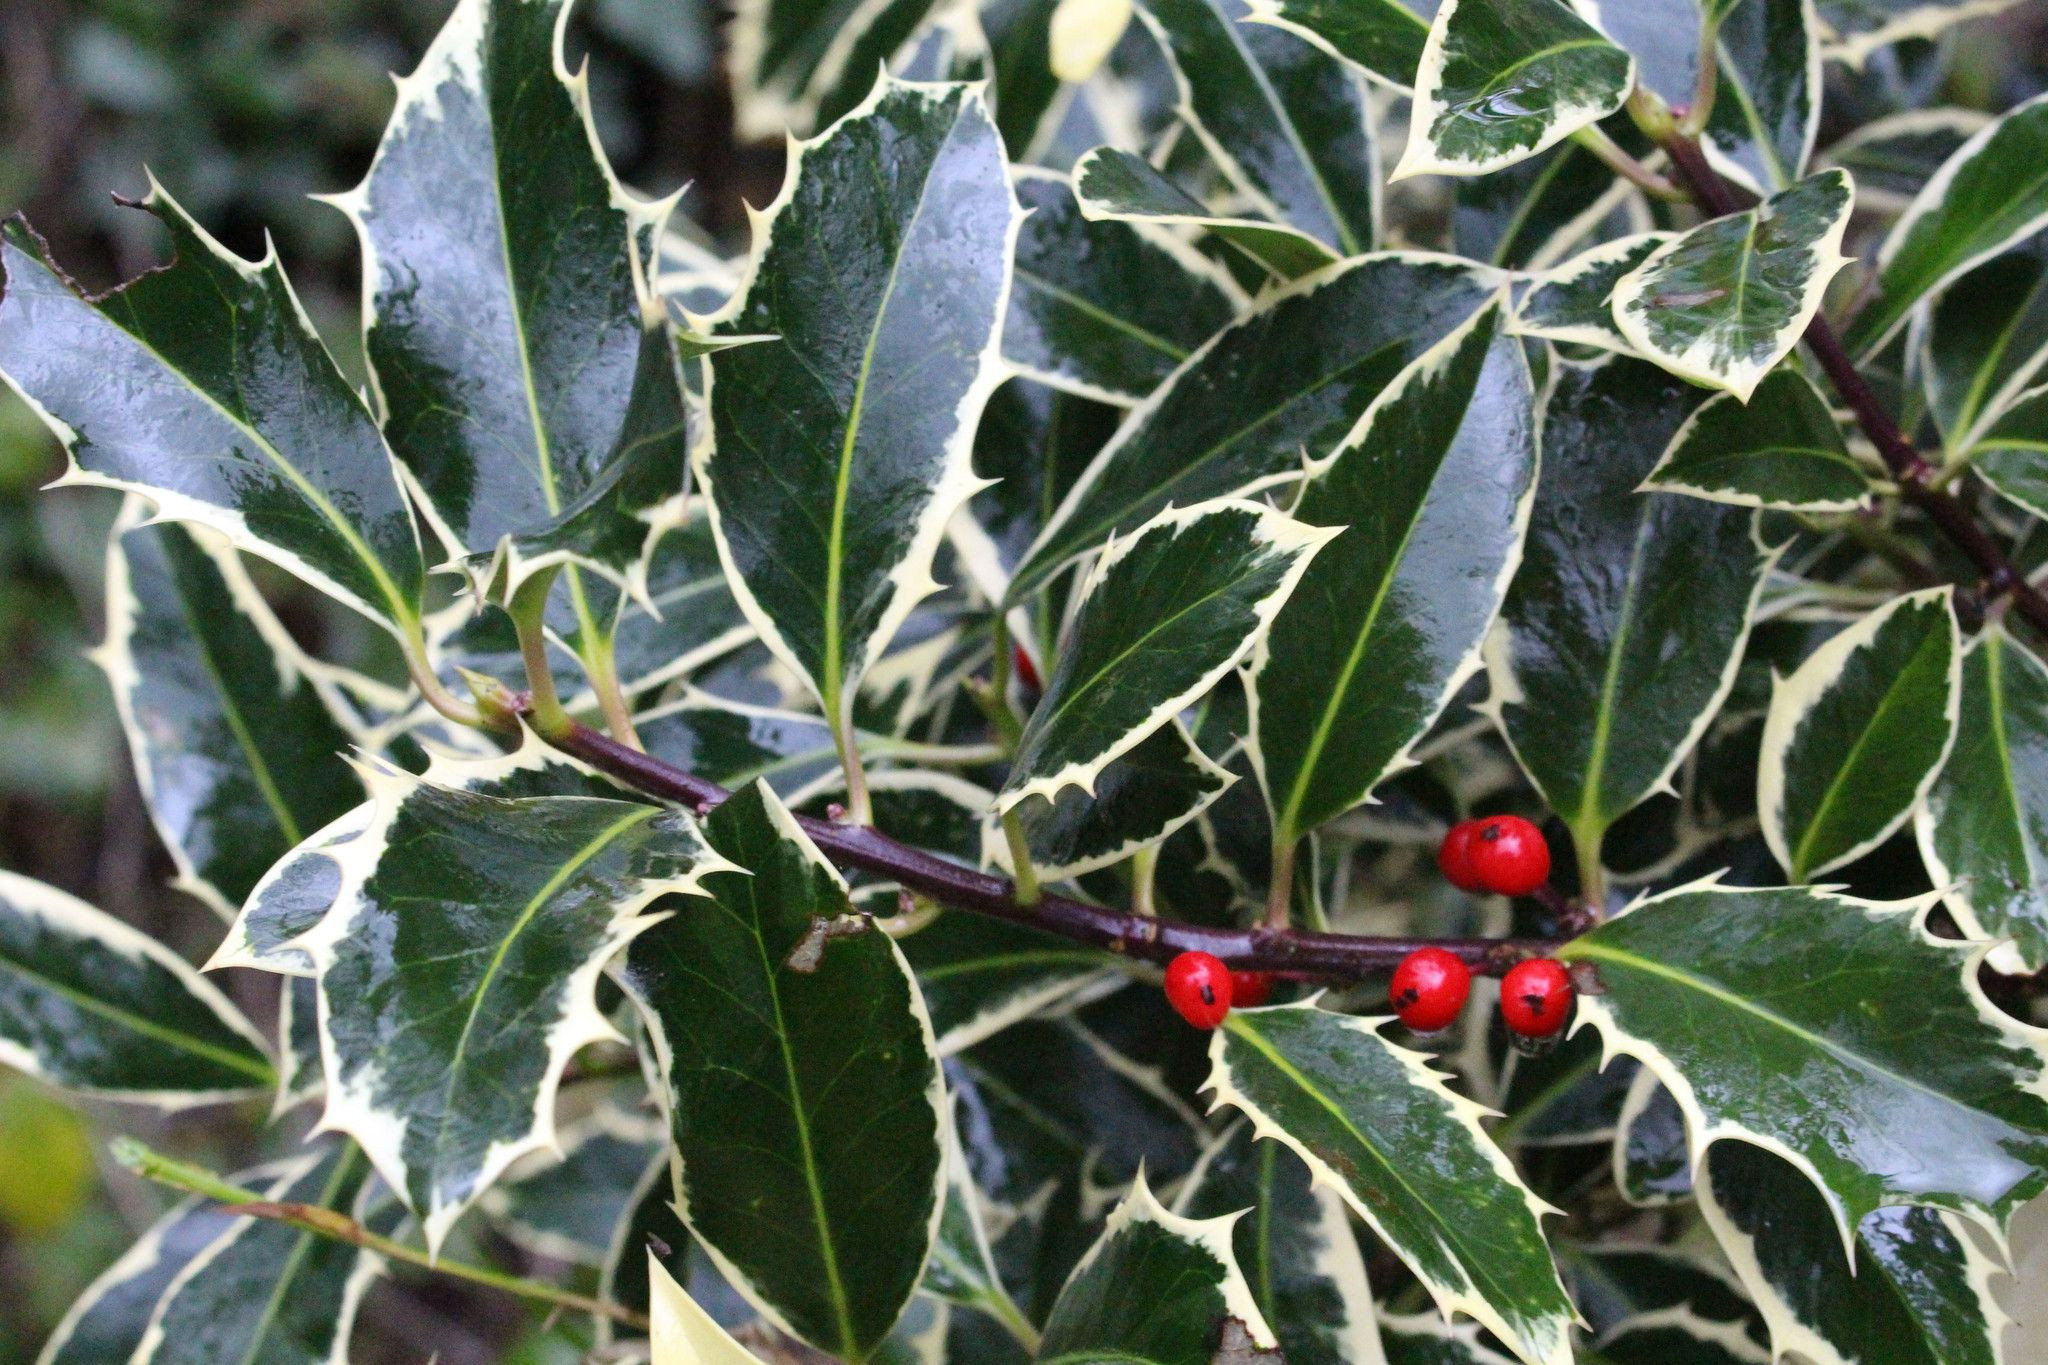 About this cultivar Ilex aquifolium Handsworth New Silver is a female pact